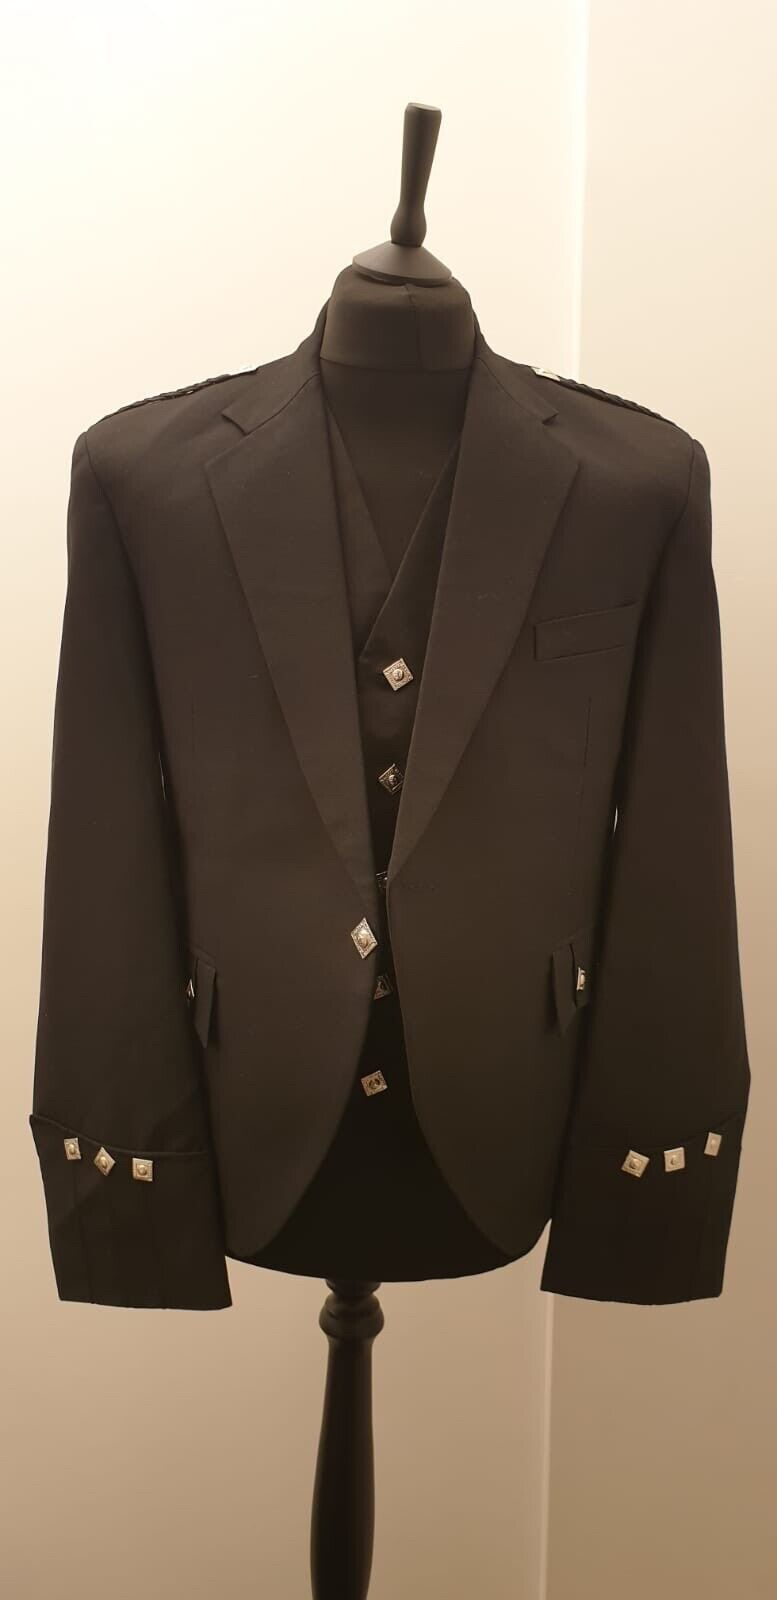 gents Argyle UK48 jacket and Waistcoat Black Available .Also Available In Bulk